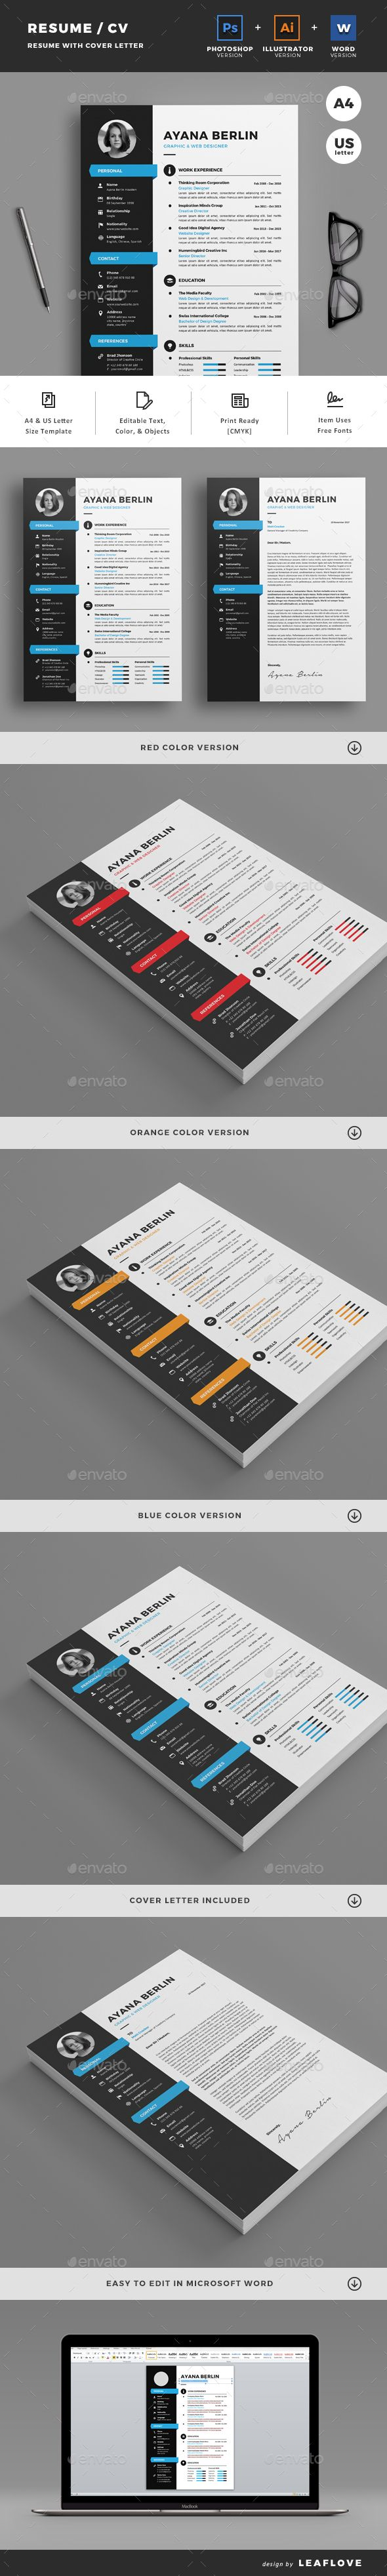 Resume by LeafLove Creative Resume TemplatesResume IdeasFree